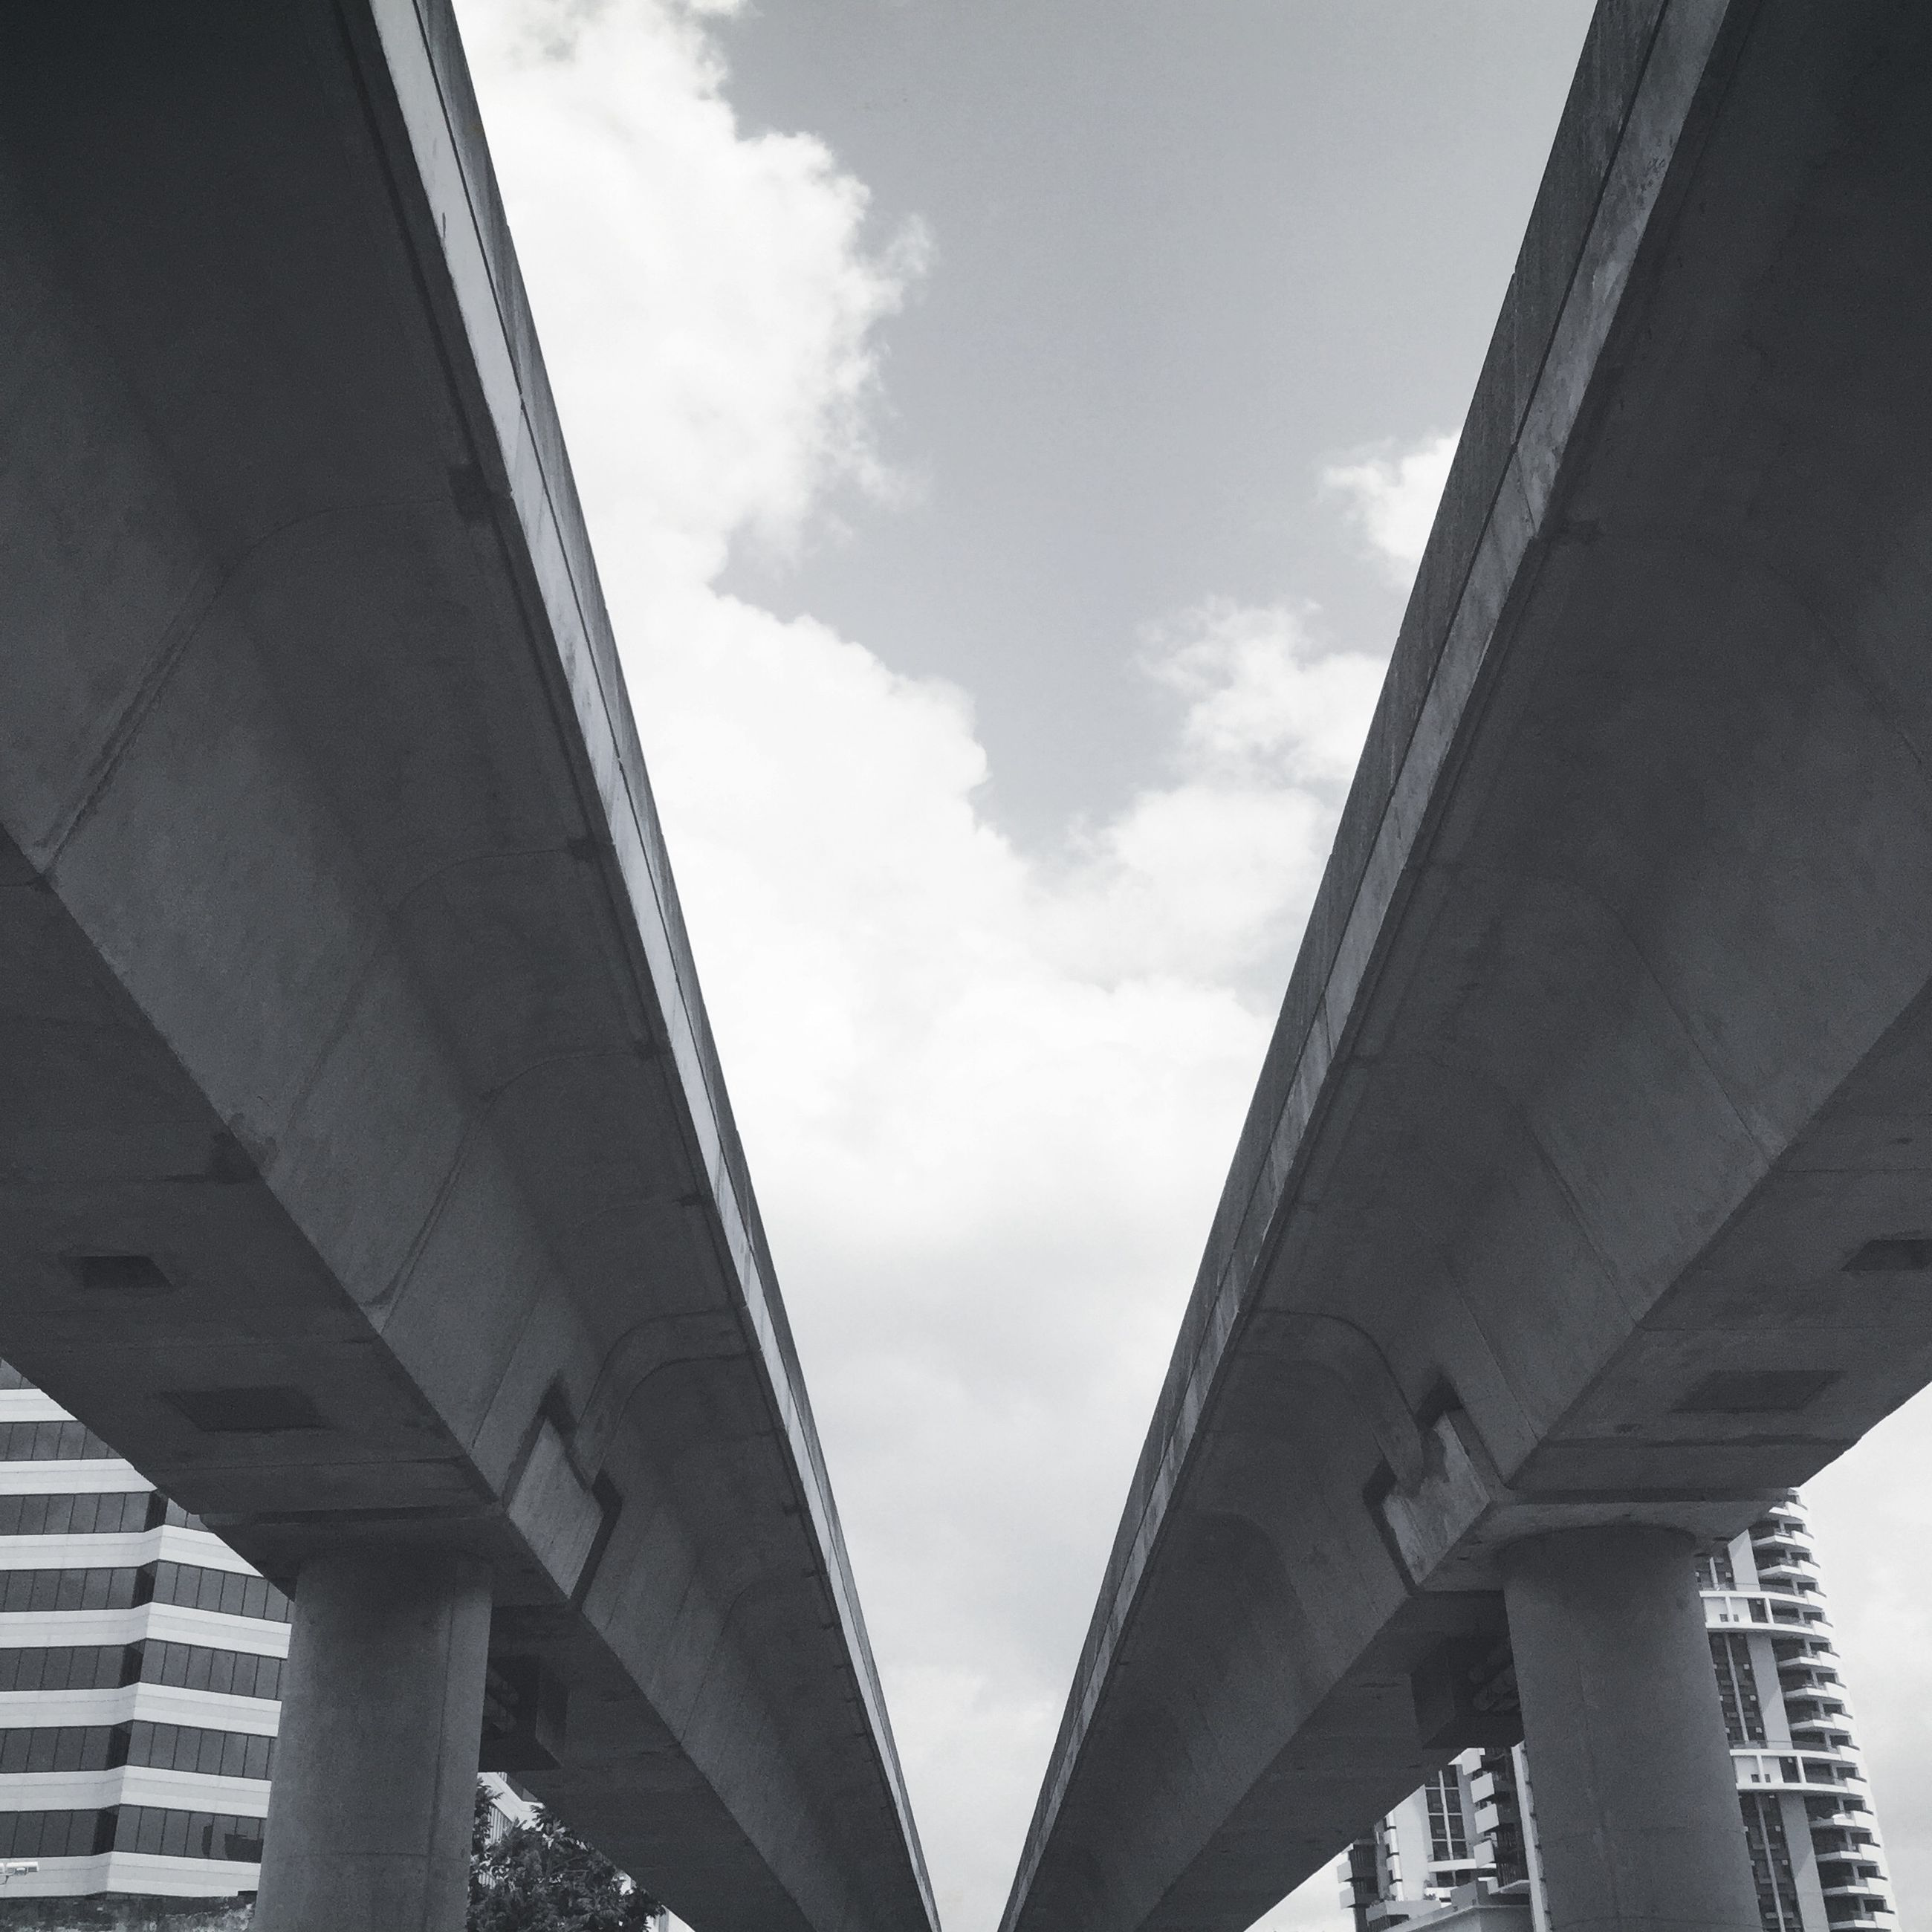 architecture, built structure, low angle view, building exterior, sky, bridge - man made structure, city, connection, engineering, modern, skyscraper, transportation, cloud - sky, day, bridge, outdoors, building, no people, office building, cloud